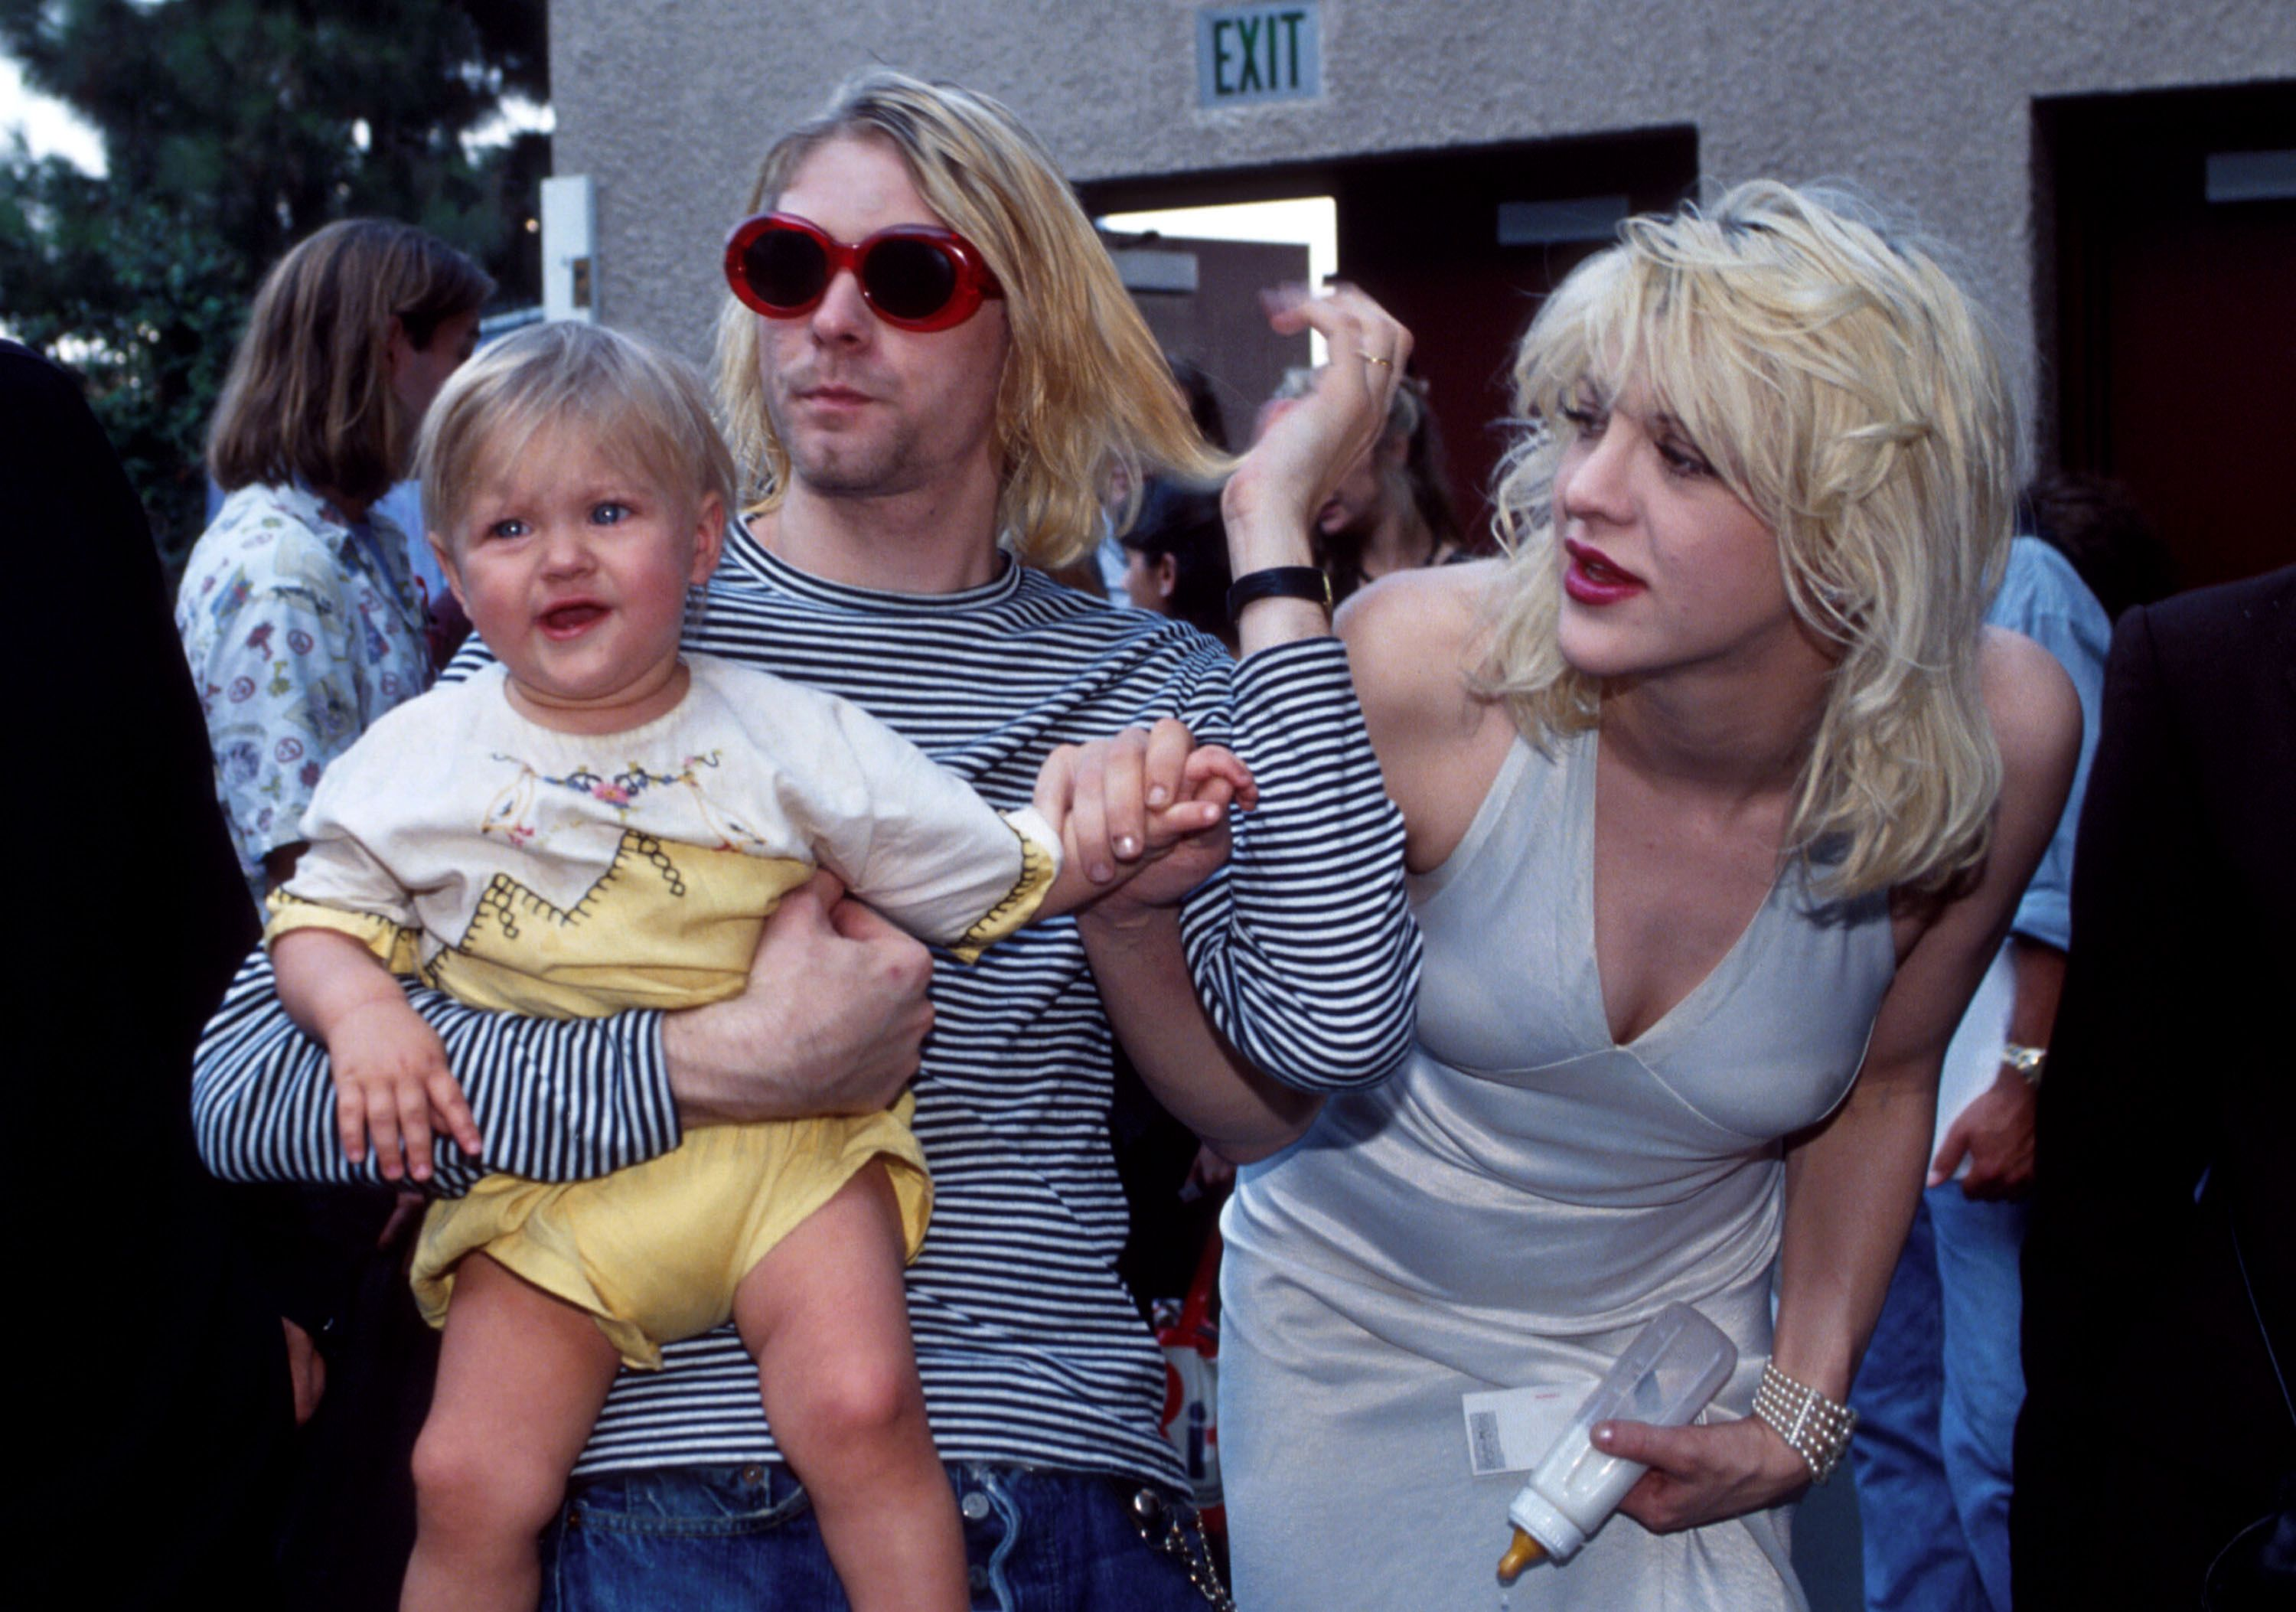 Kurt Cobain of Nirvana with Courtney Love and daughter Frances Bean Cobain at the MTV Video Music Awards  in 1993 in Universal City, California | Source: Getty Images